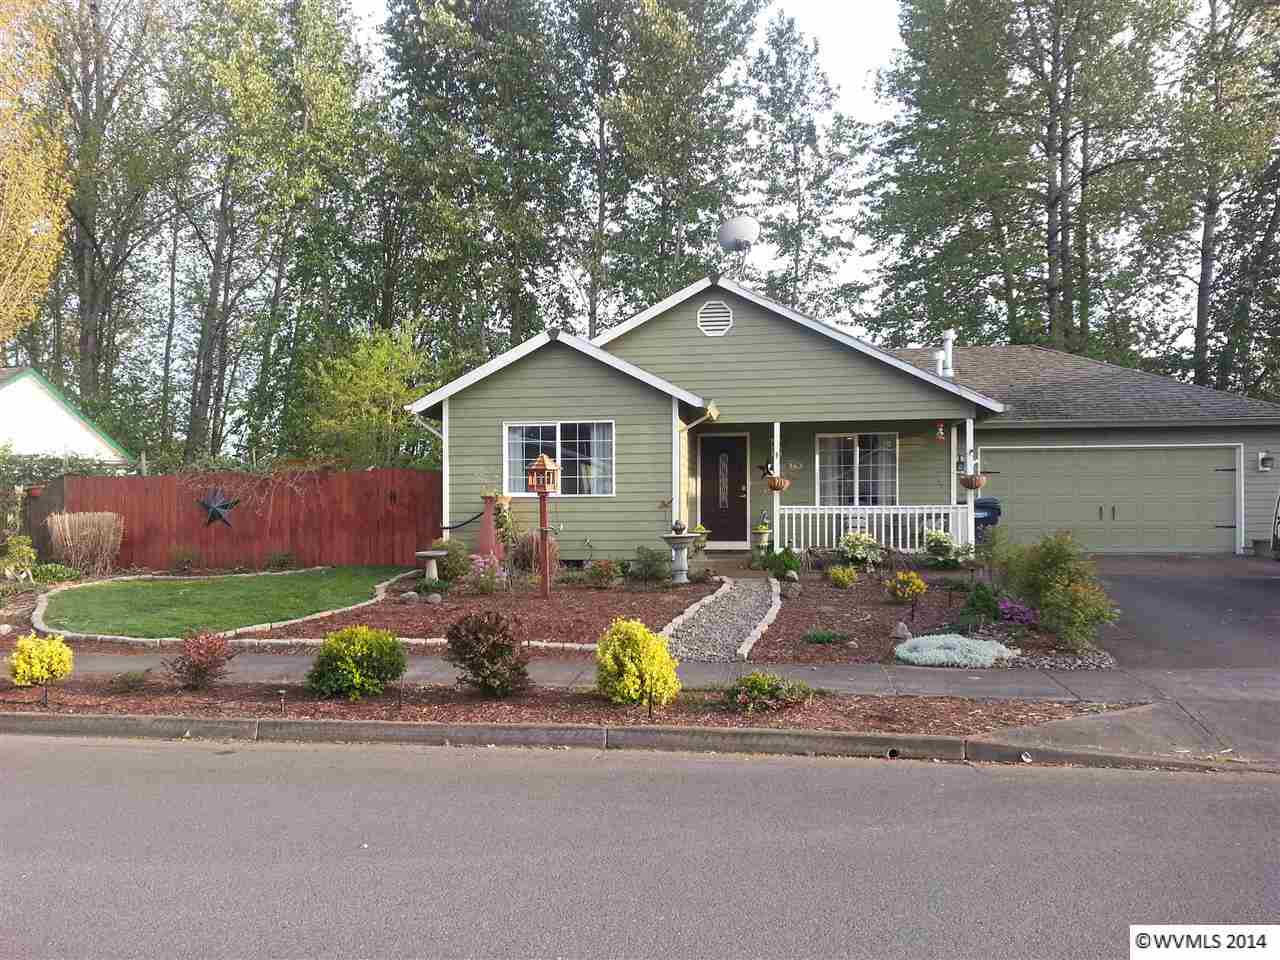 163 River Oak Rd, Independence, OR 97351